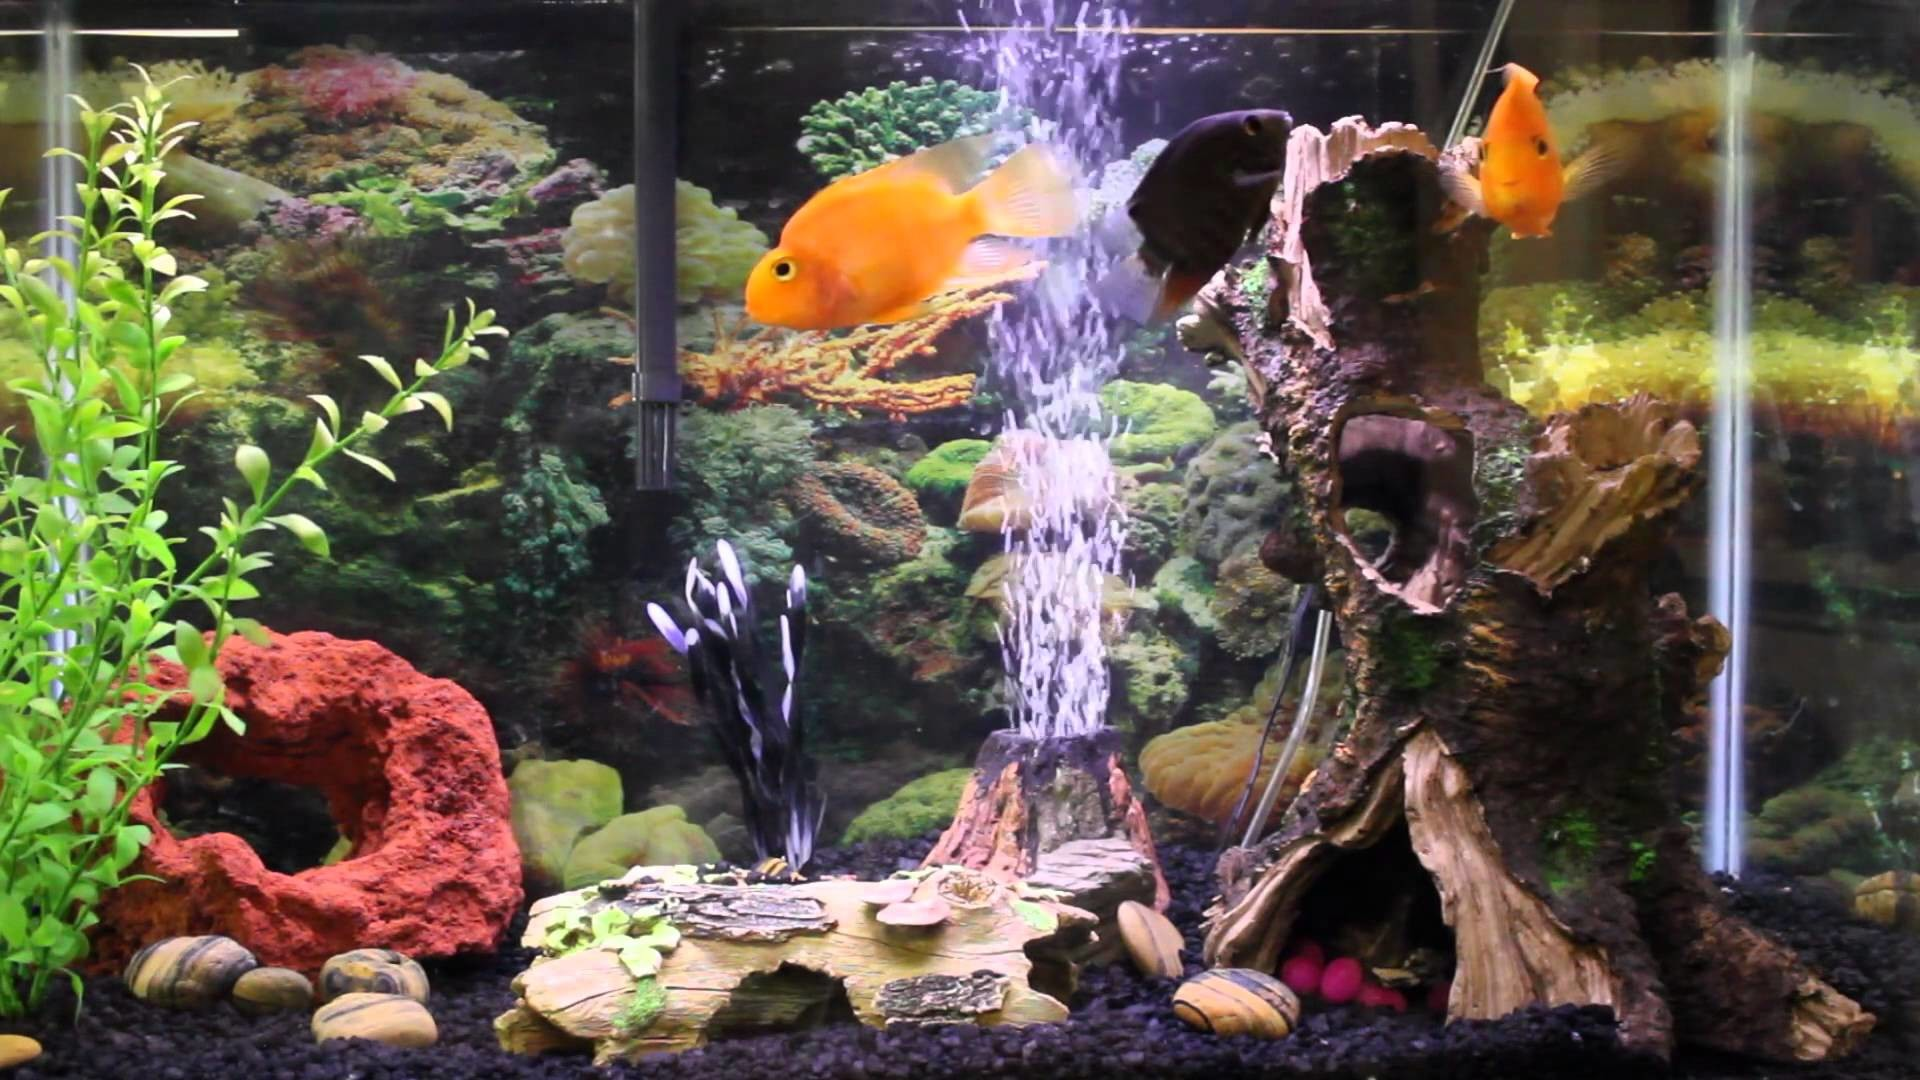 1920x1080 Full Size of Fish Tank 1hr Relaxing Music Aquarium Screensaver Fishtank Hd  Youtube Download Torrent Microsoft ...